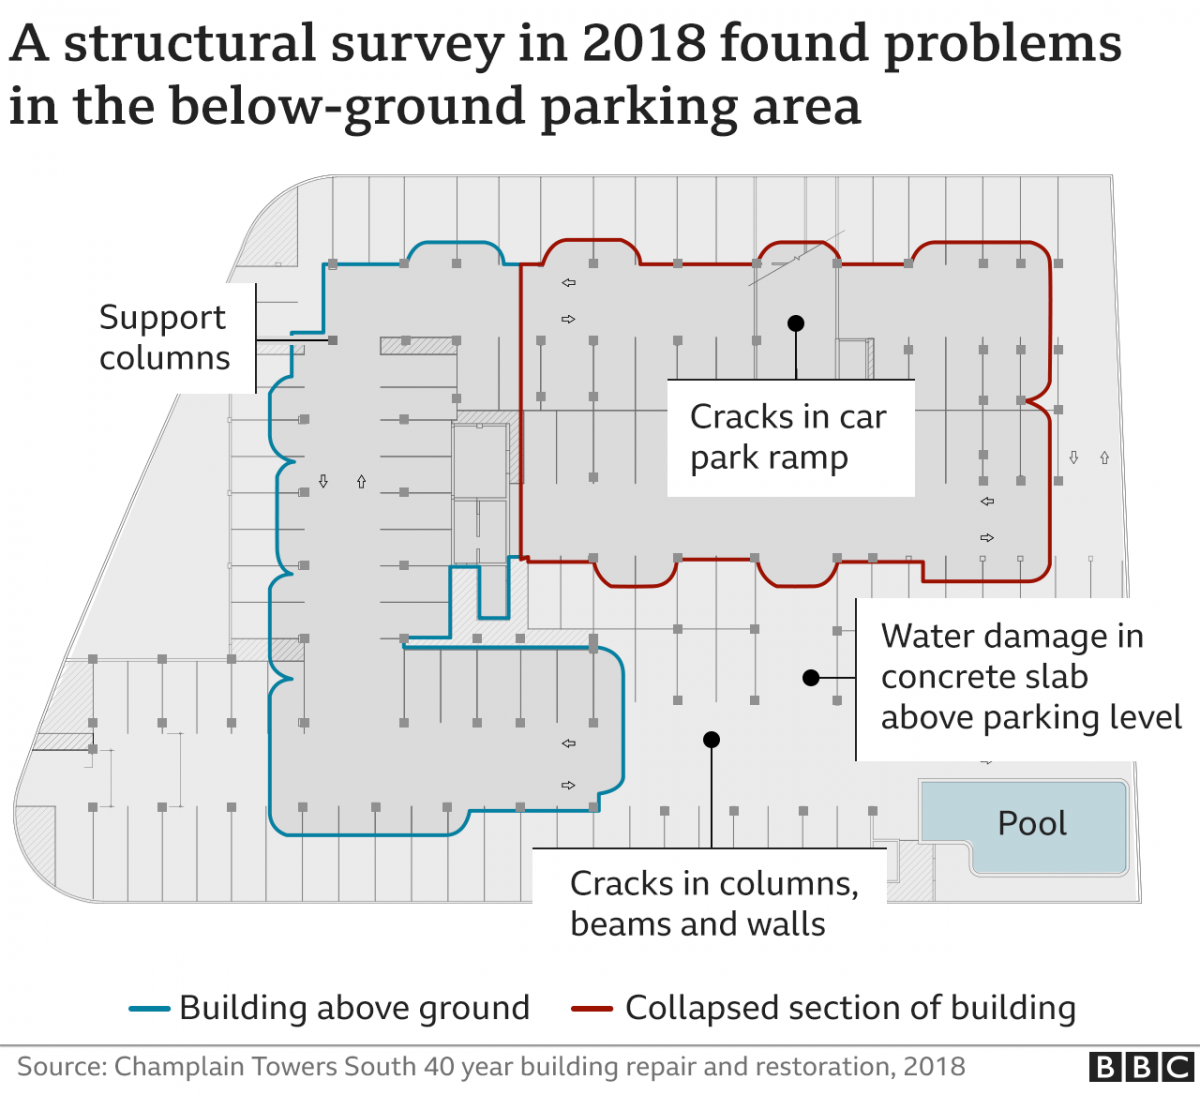 An illustration showing problems in th ebelow-ground parking area of Champlain Towers South as revealed in 2018 report. This building collapsed on 24th June 2021.